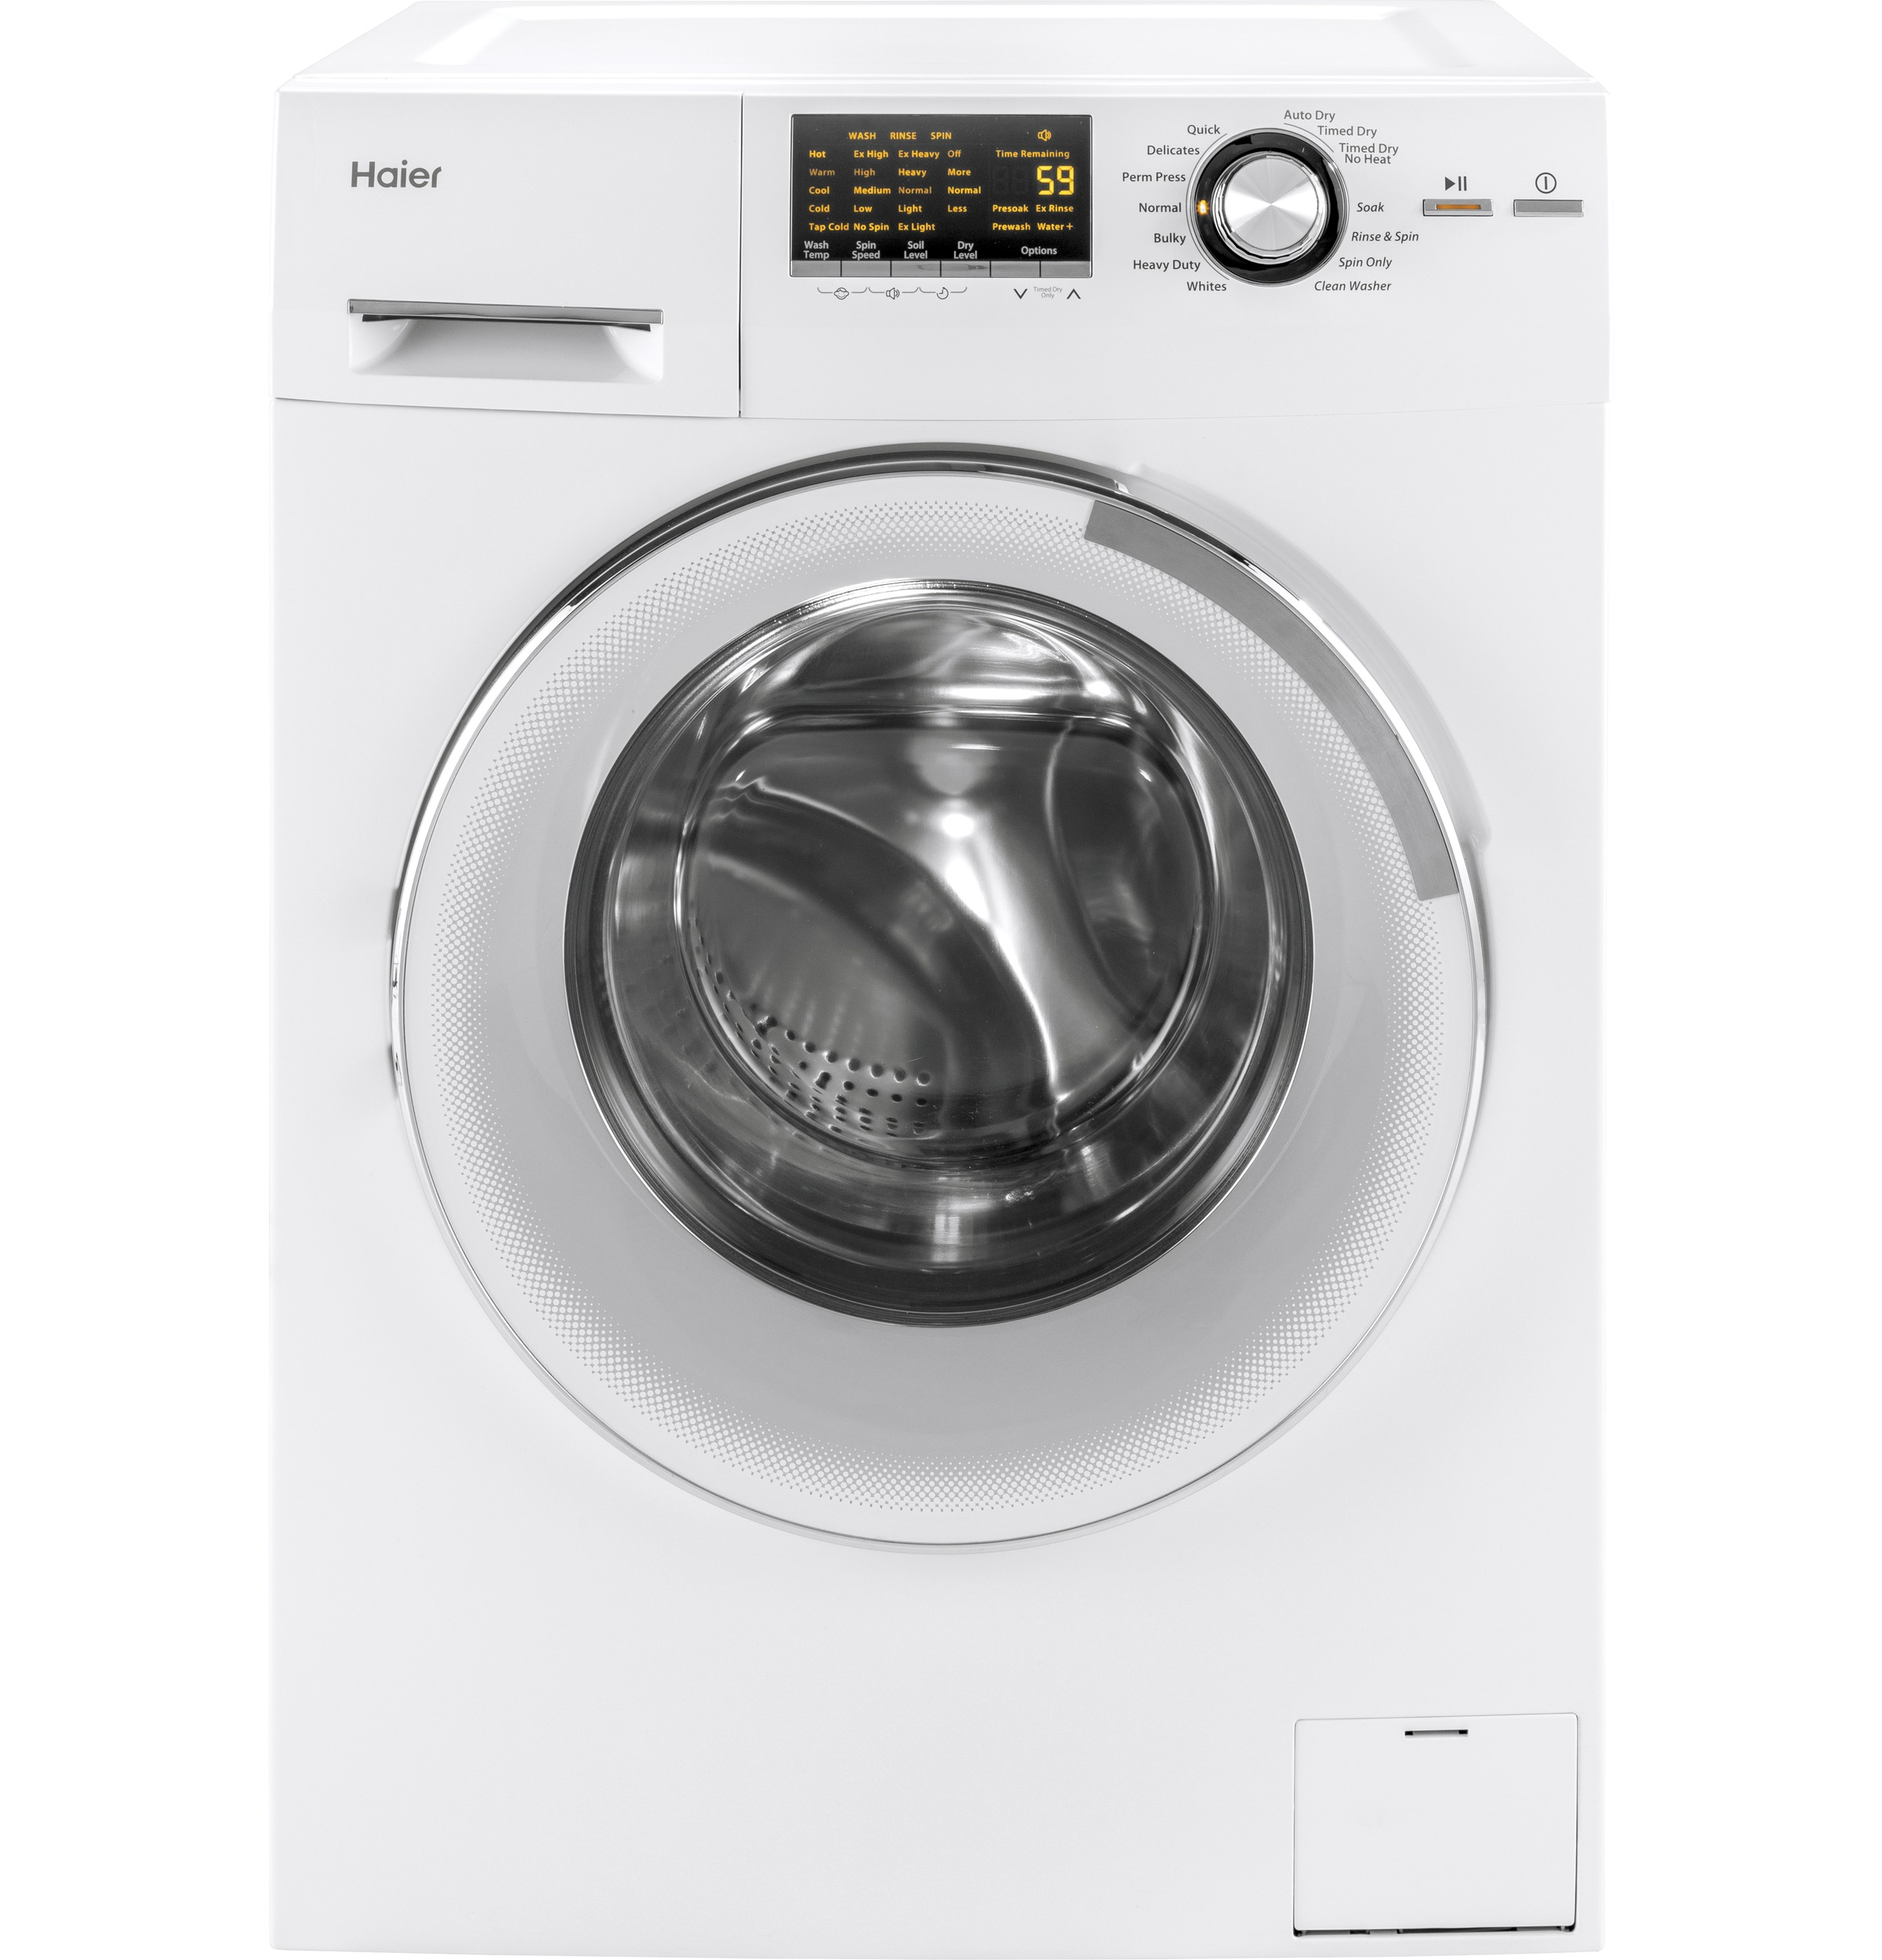 White Unitized Spacemaker Washer & Dryers HLC1700AXW  Un-installed/free-standing